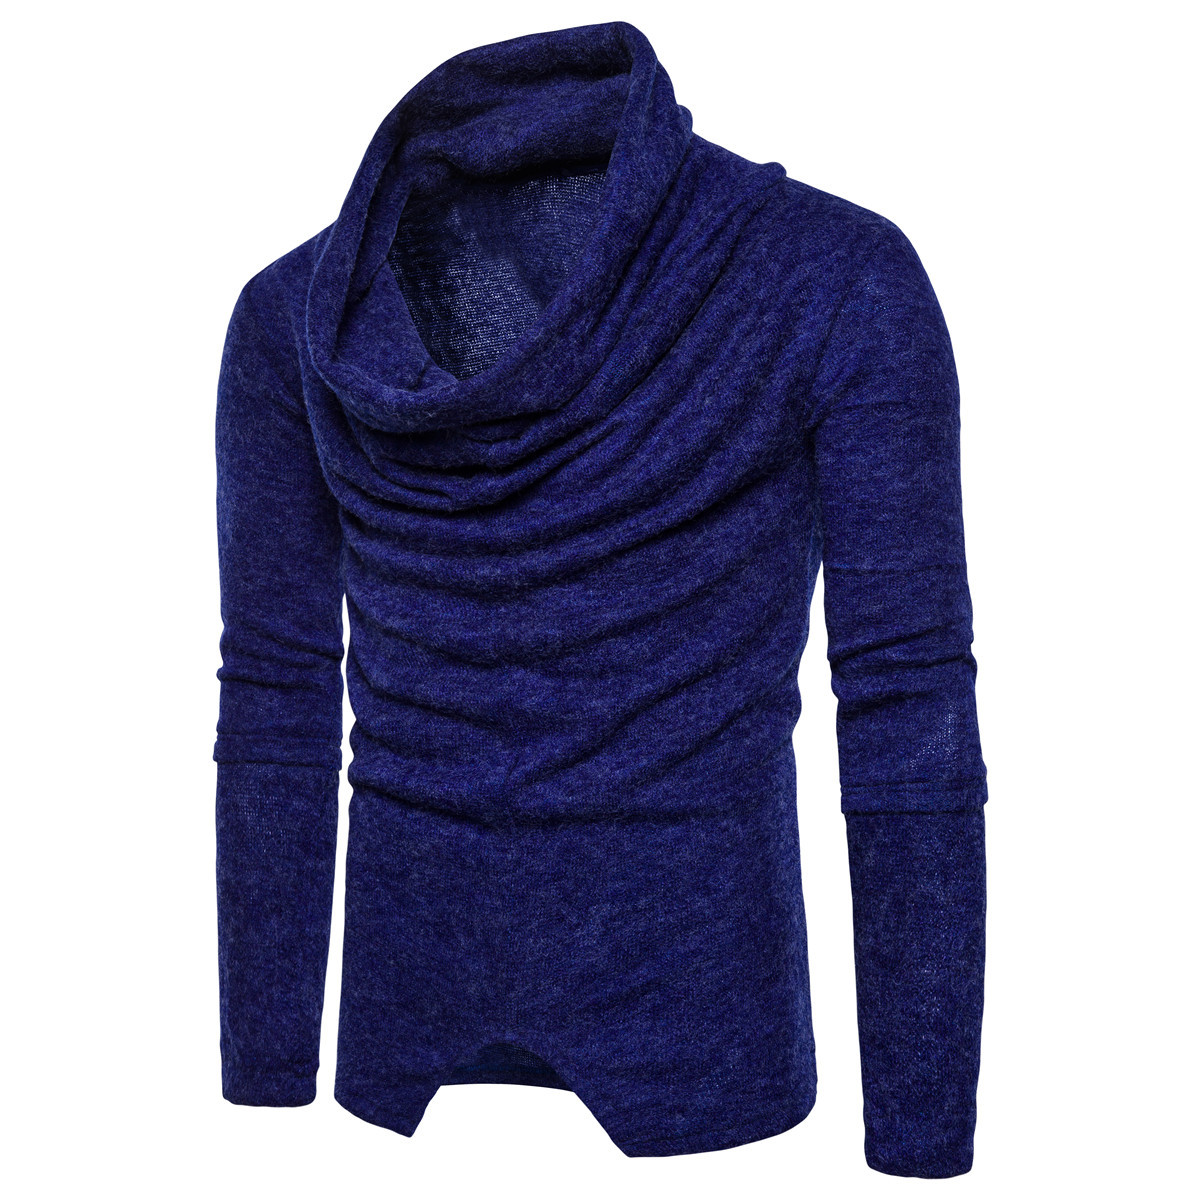 Sweater Man Pullovers Slim-Fit Knitted Men Turtleneck Fold-Neck Men's Casual Fashion